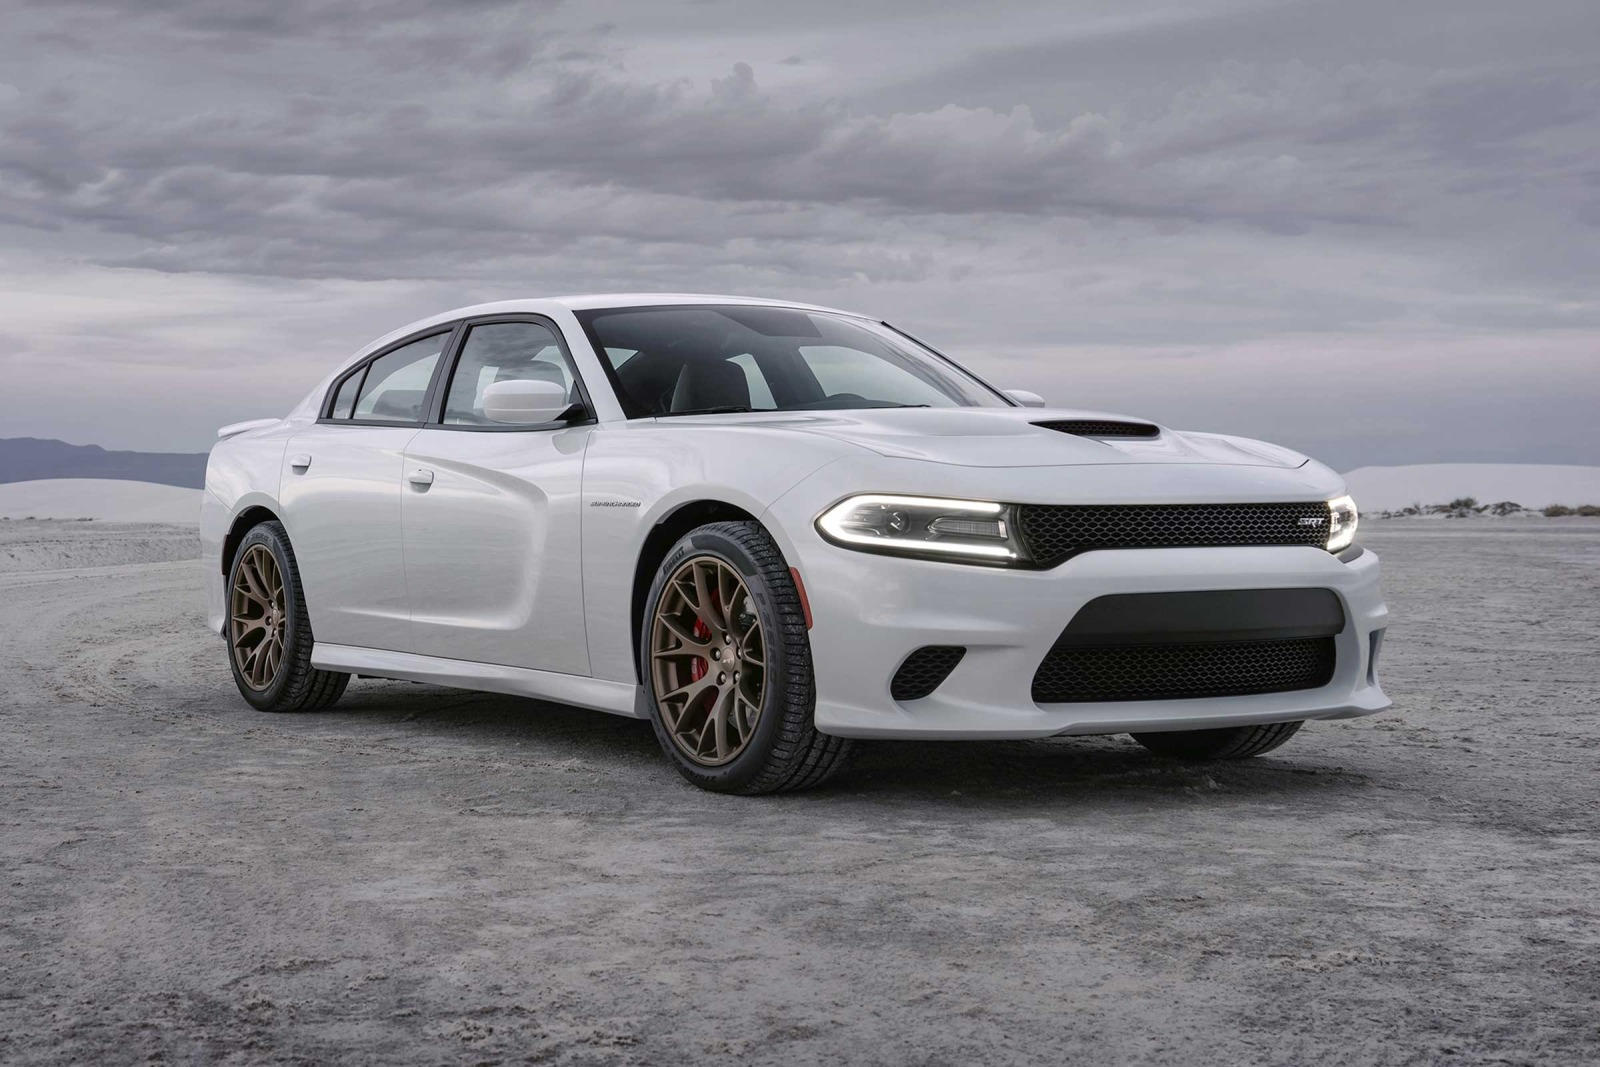 2018 Dodge Charger Srt Hellcat Review Trims Specs And